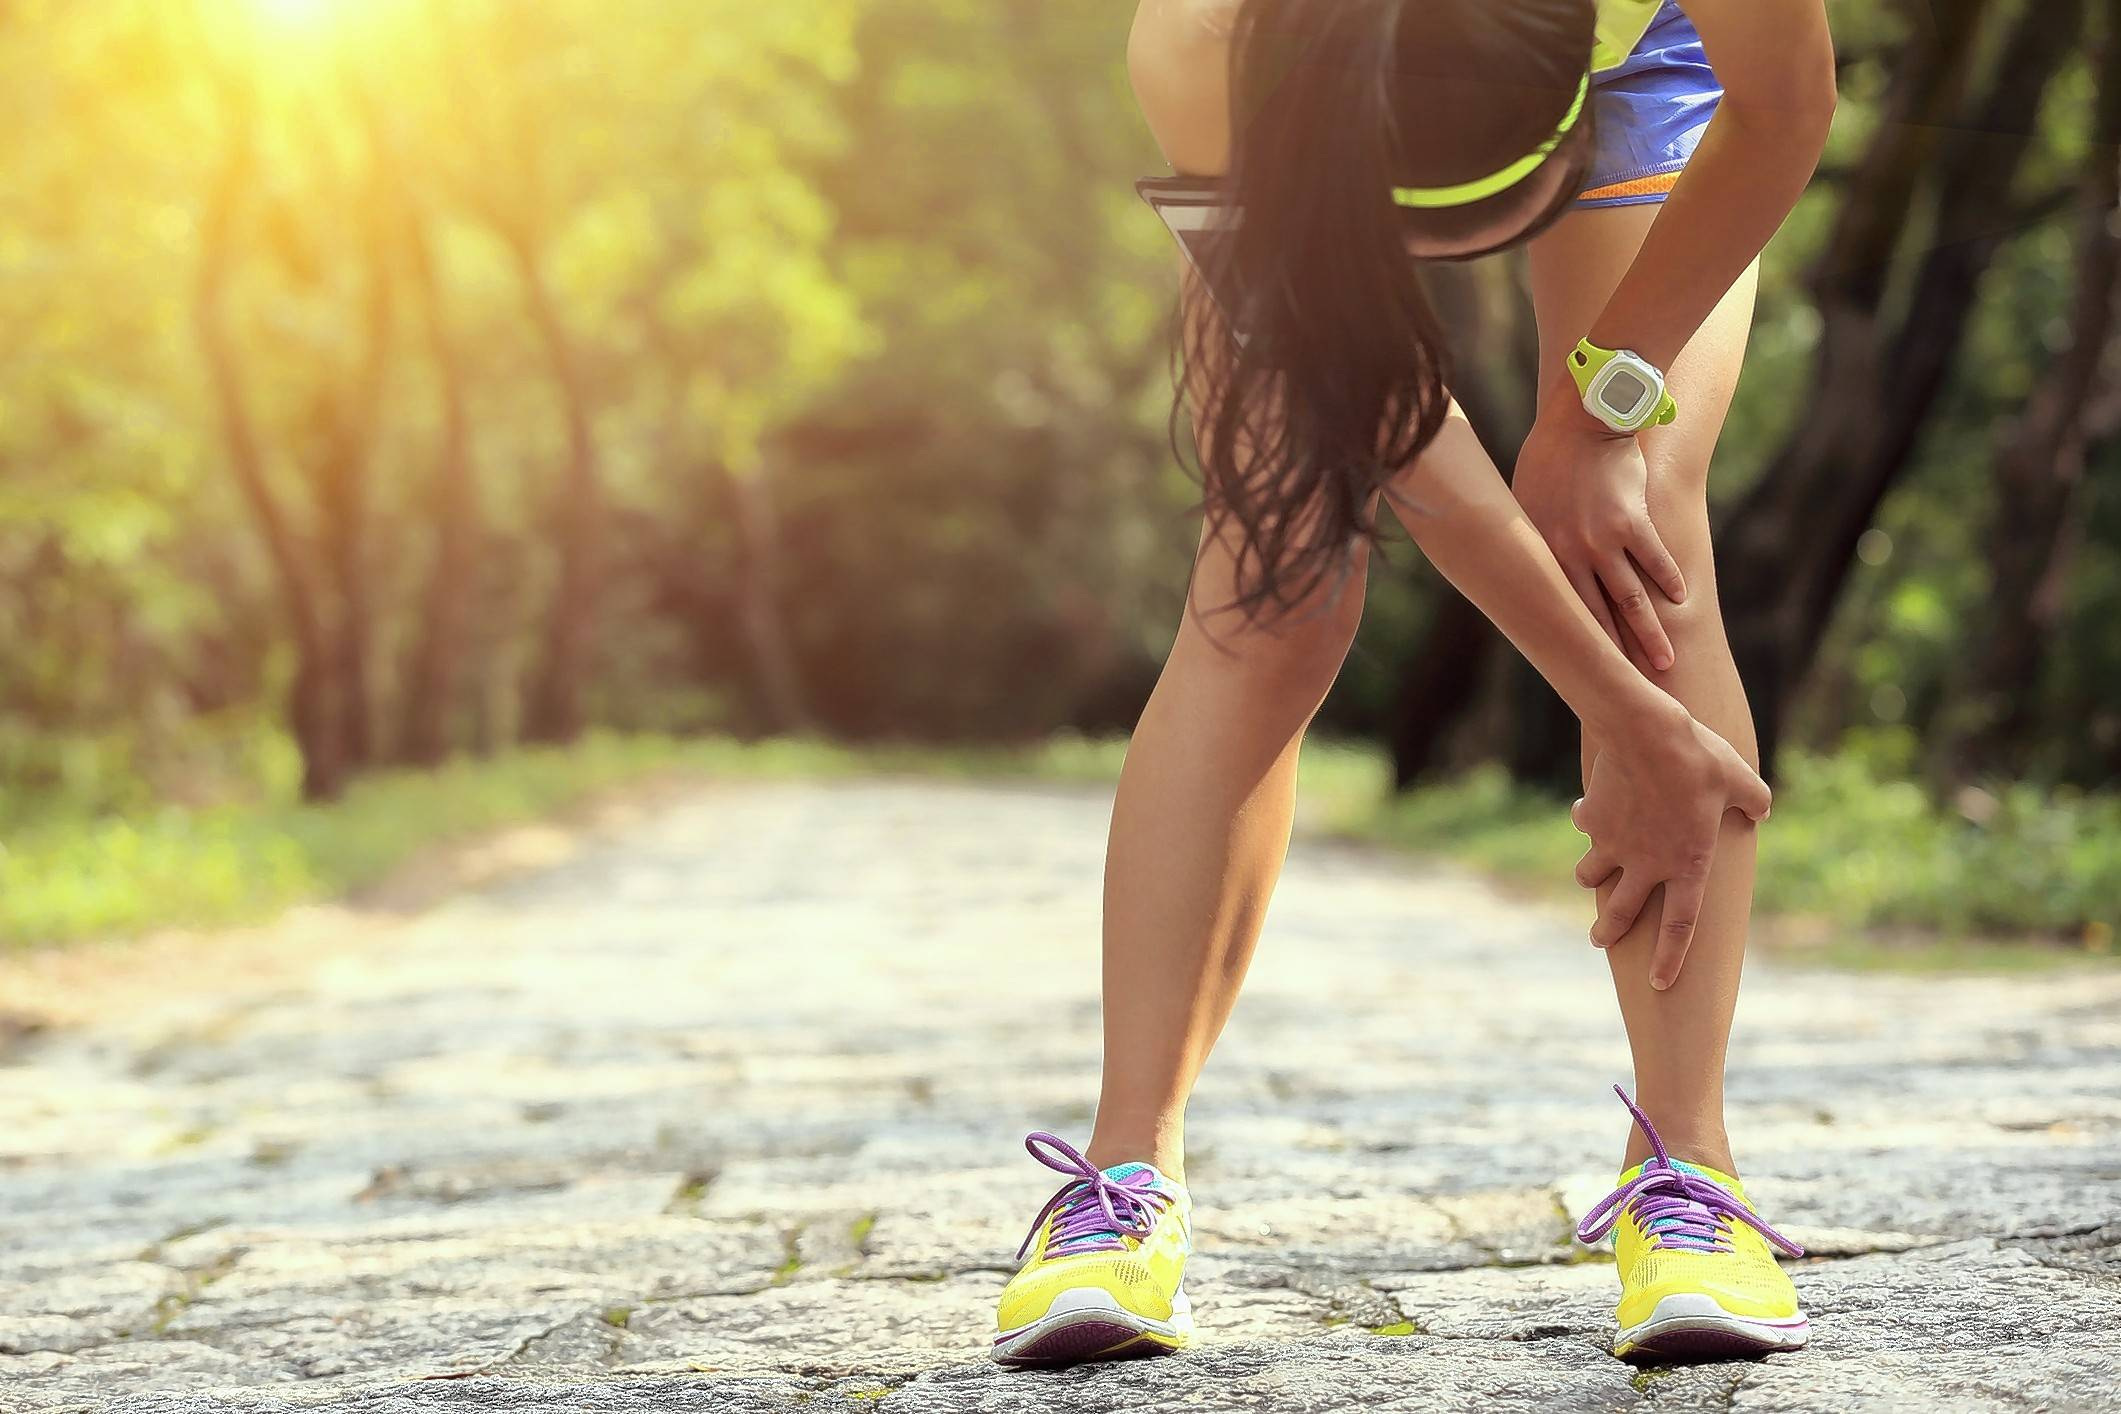 With running, pushing through pain can lead to a secondary injury, doctors warn.